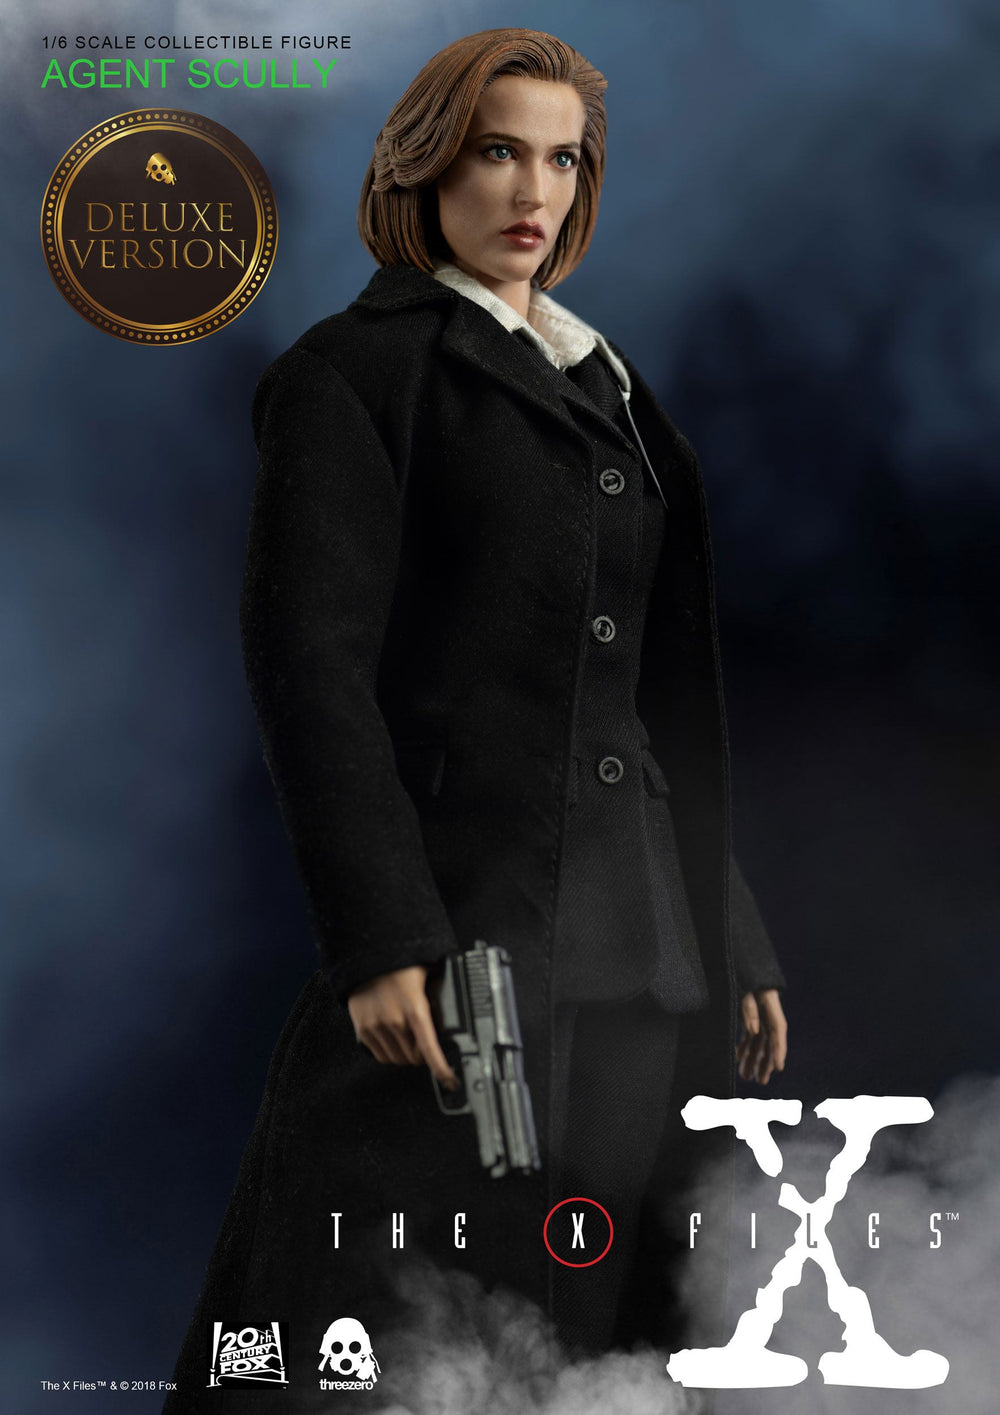 Threezero The X-Files Agent Scully Deluxe Ver. 1/6 Action Figure